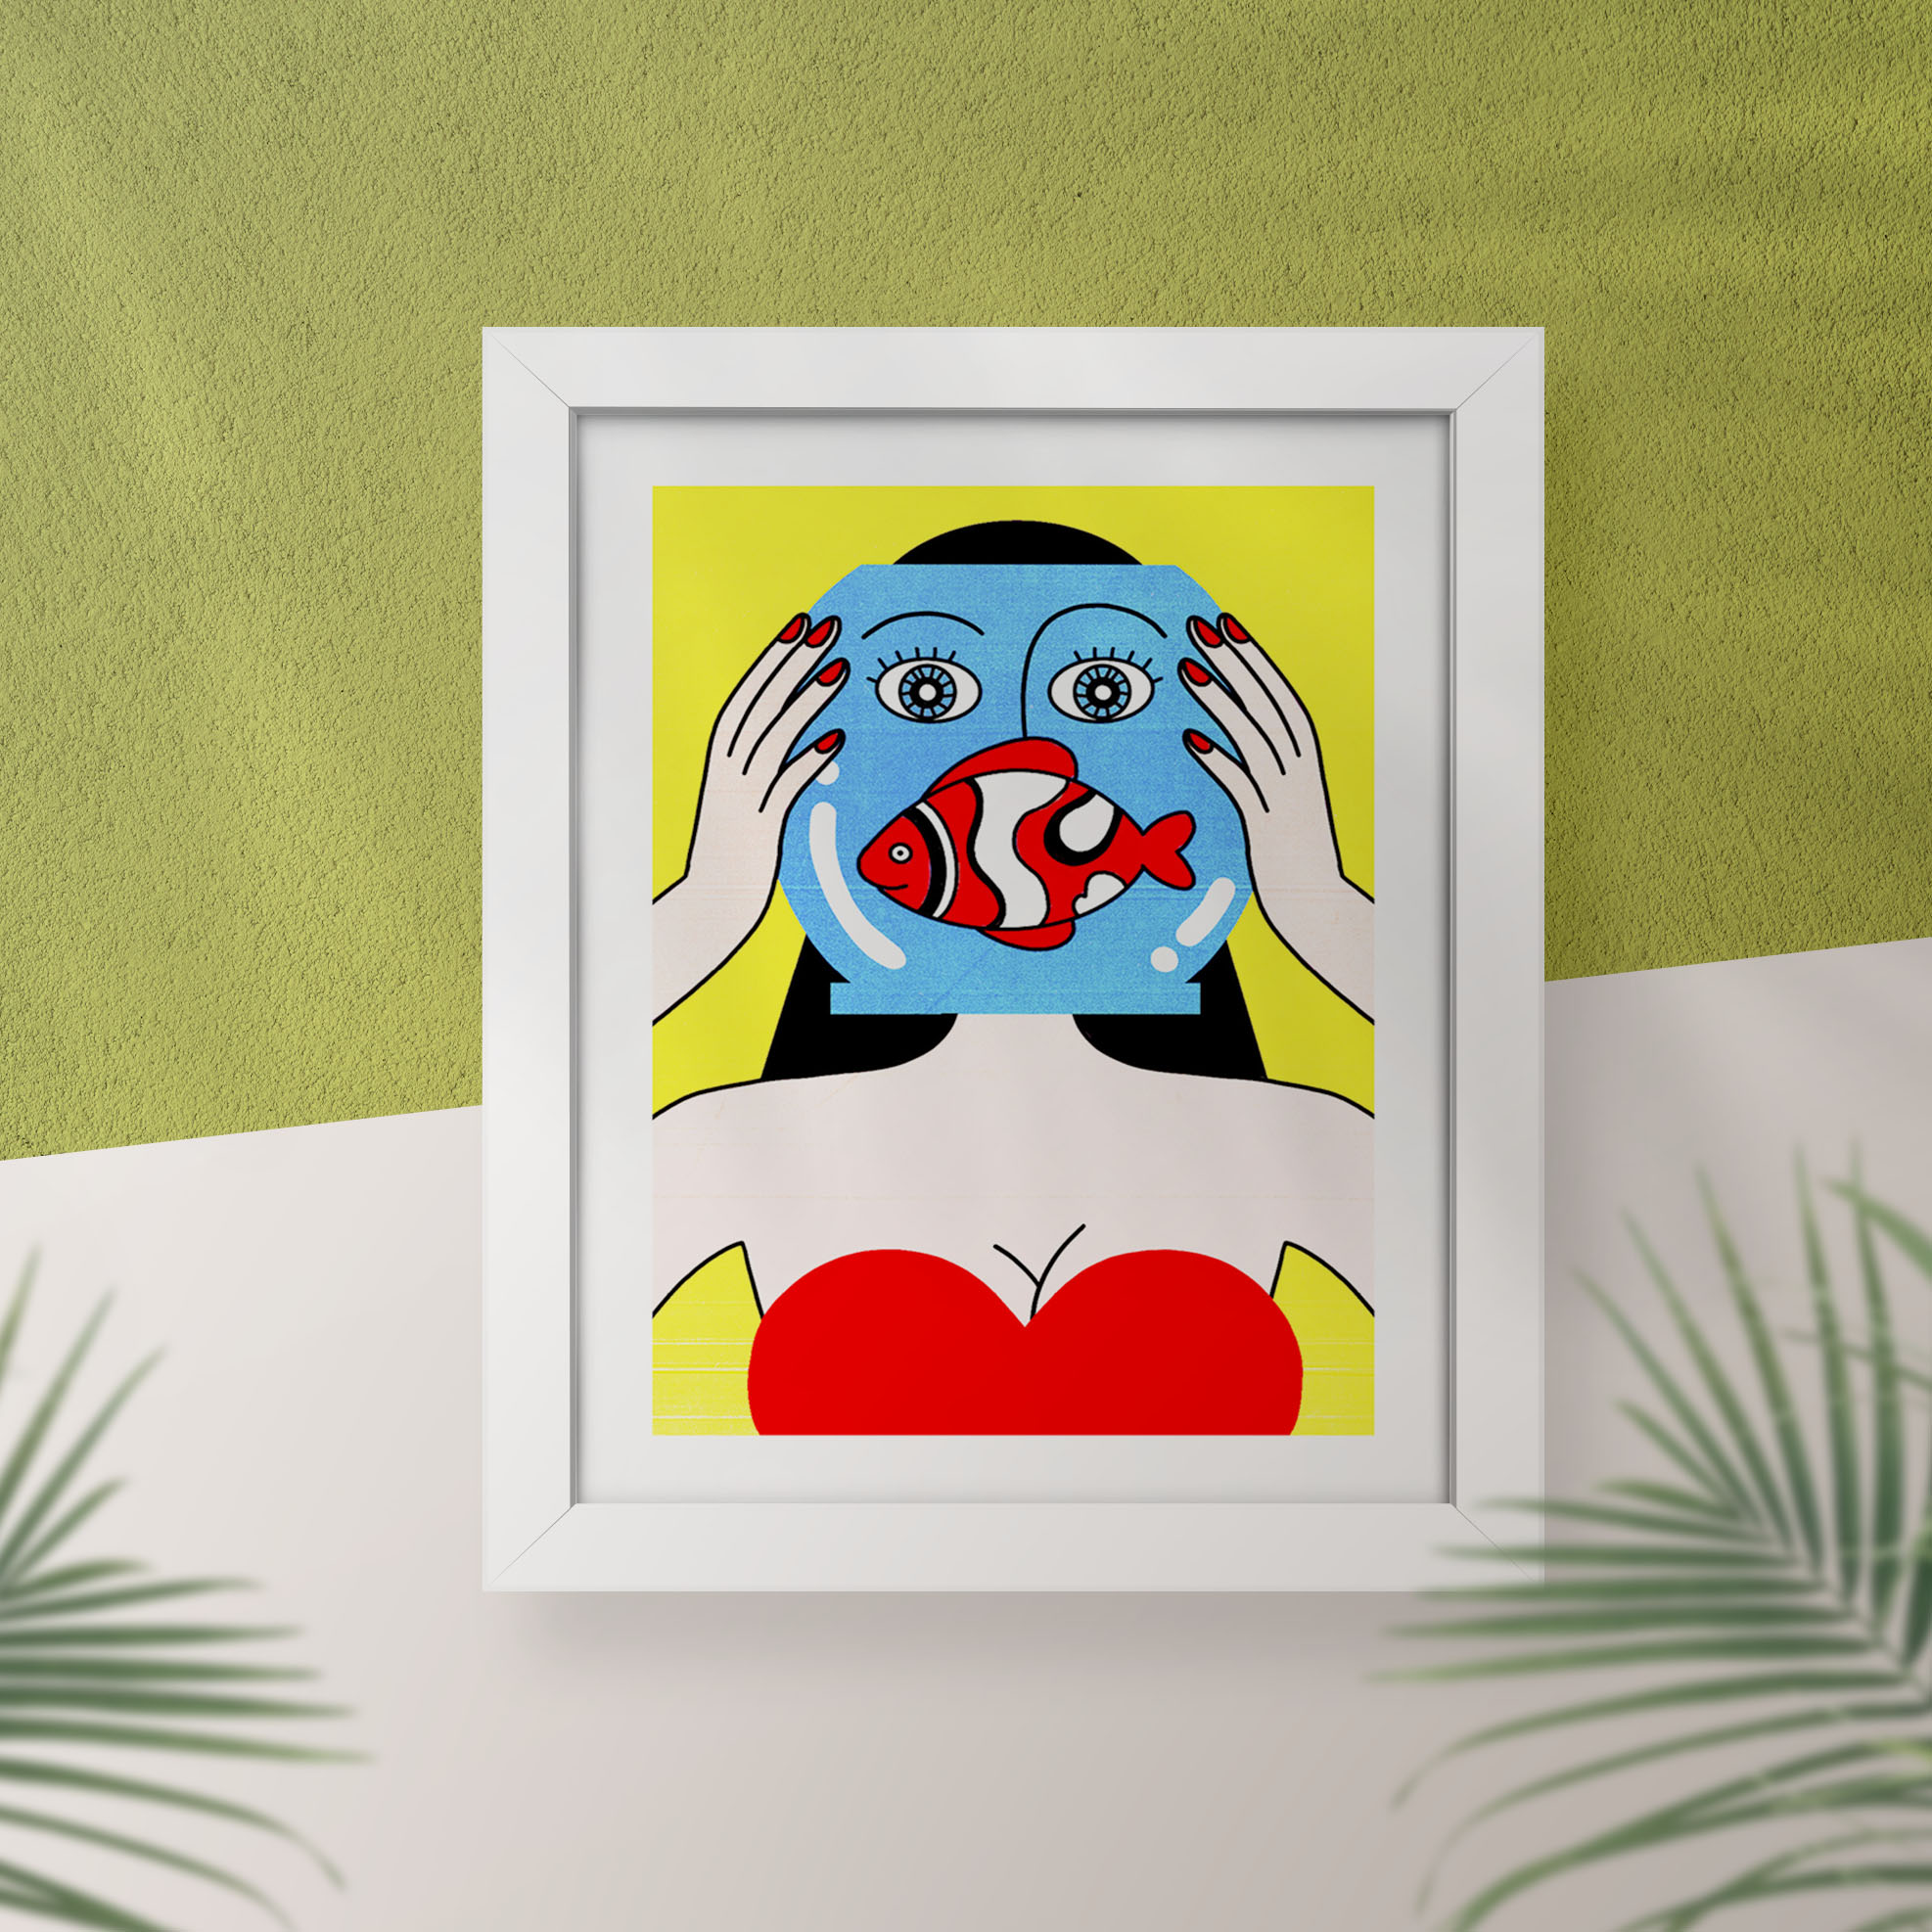 scombinanto-colomboni-poster-fine-art-print-stampa-home-illustrazione-illustration-gift-casa-regalo-donna-mouth-fish-bocca-pesce (2)